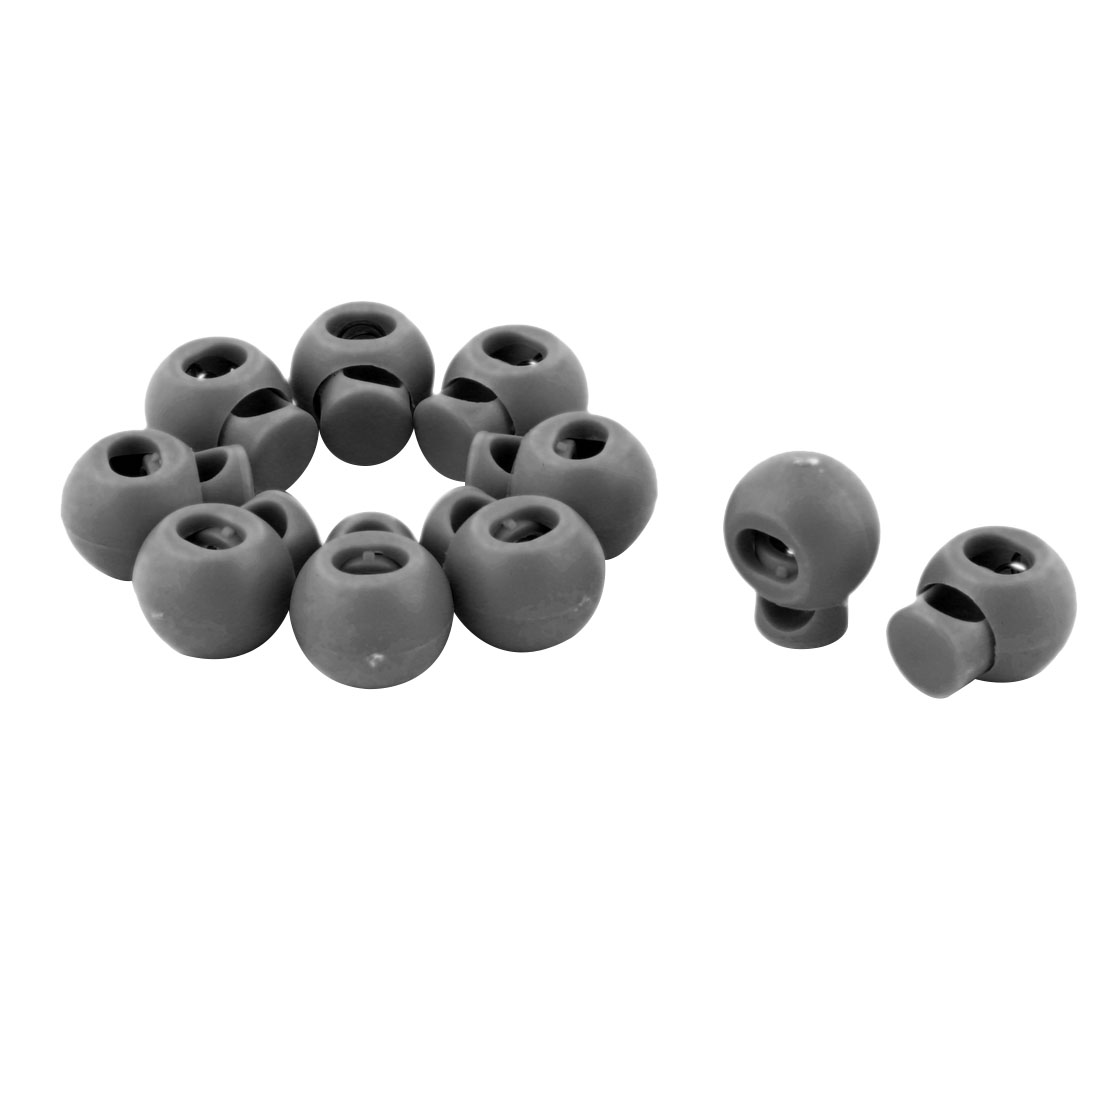 Plastic Round Single Hole Ball Toggle Stopper Cord String Adjustive Lock Gray 10 Pcs